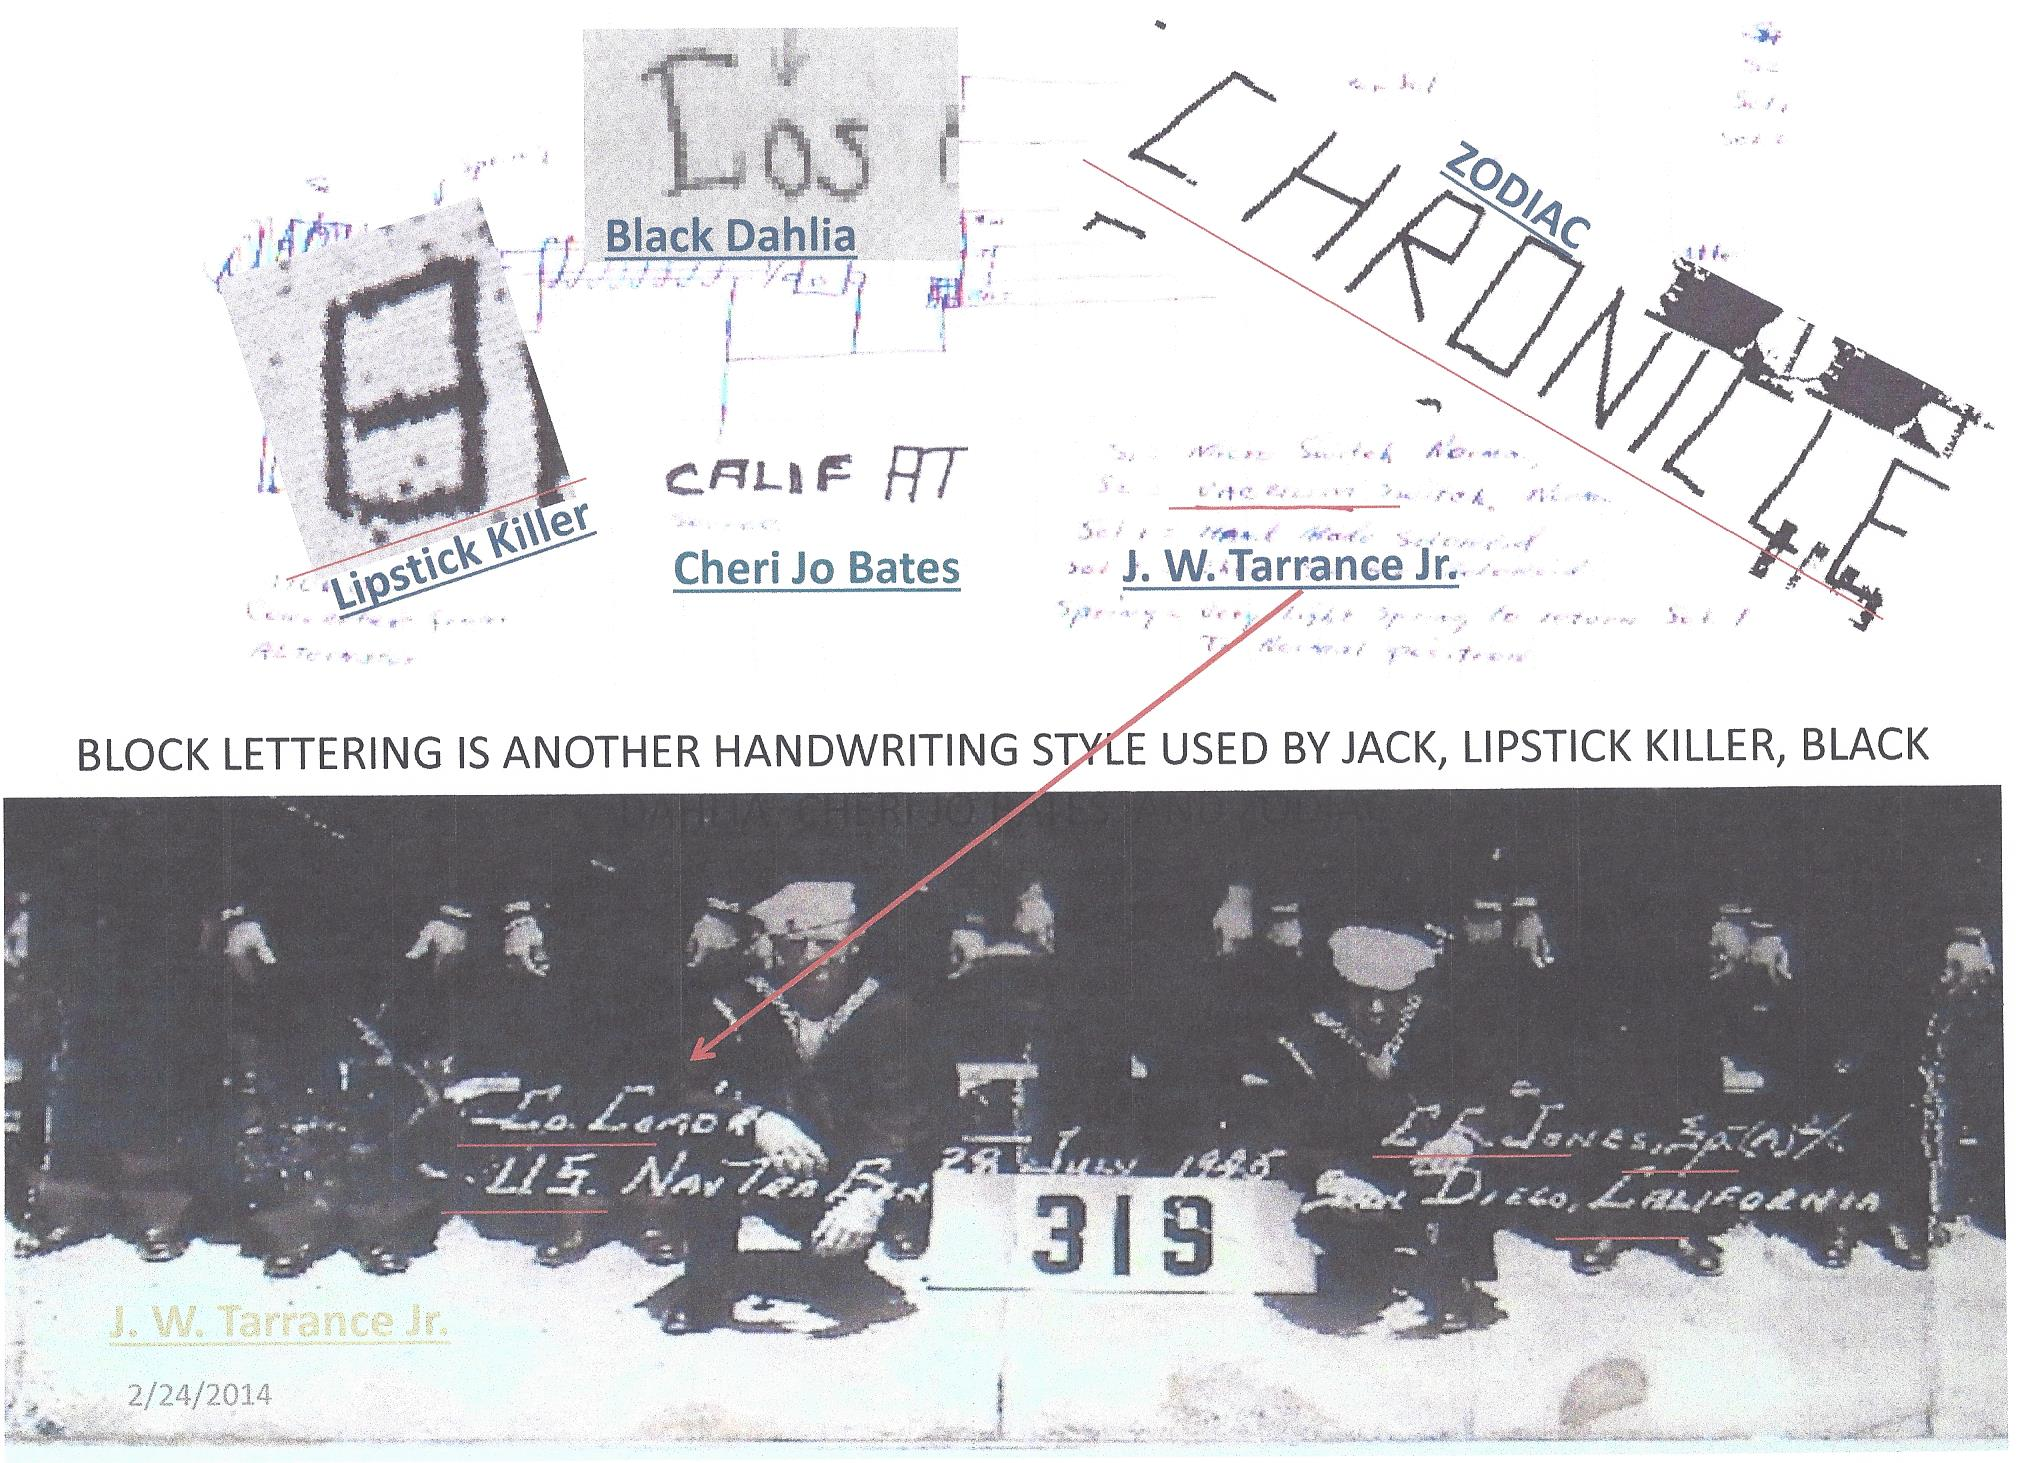 Handwriting Characteristics JPEG0002.jpg